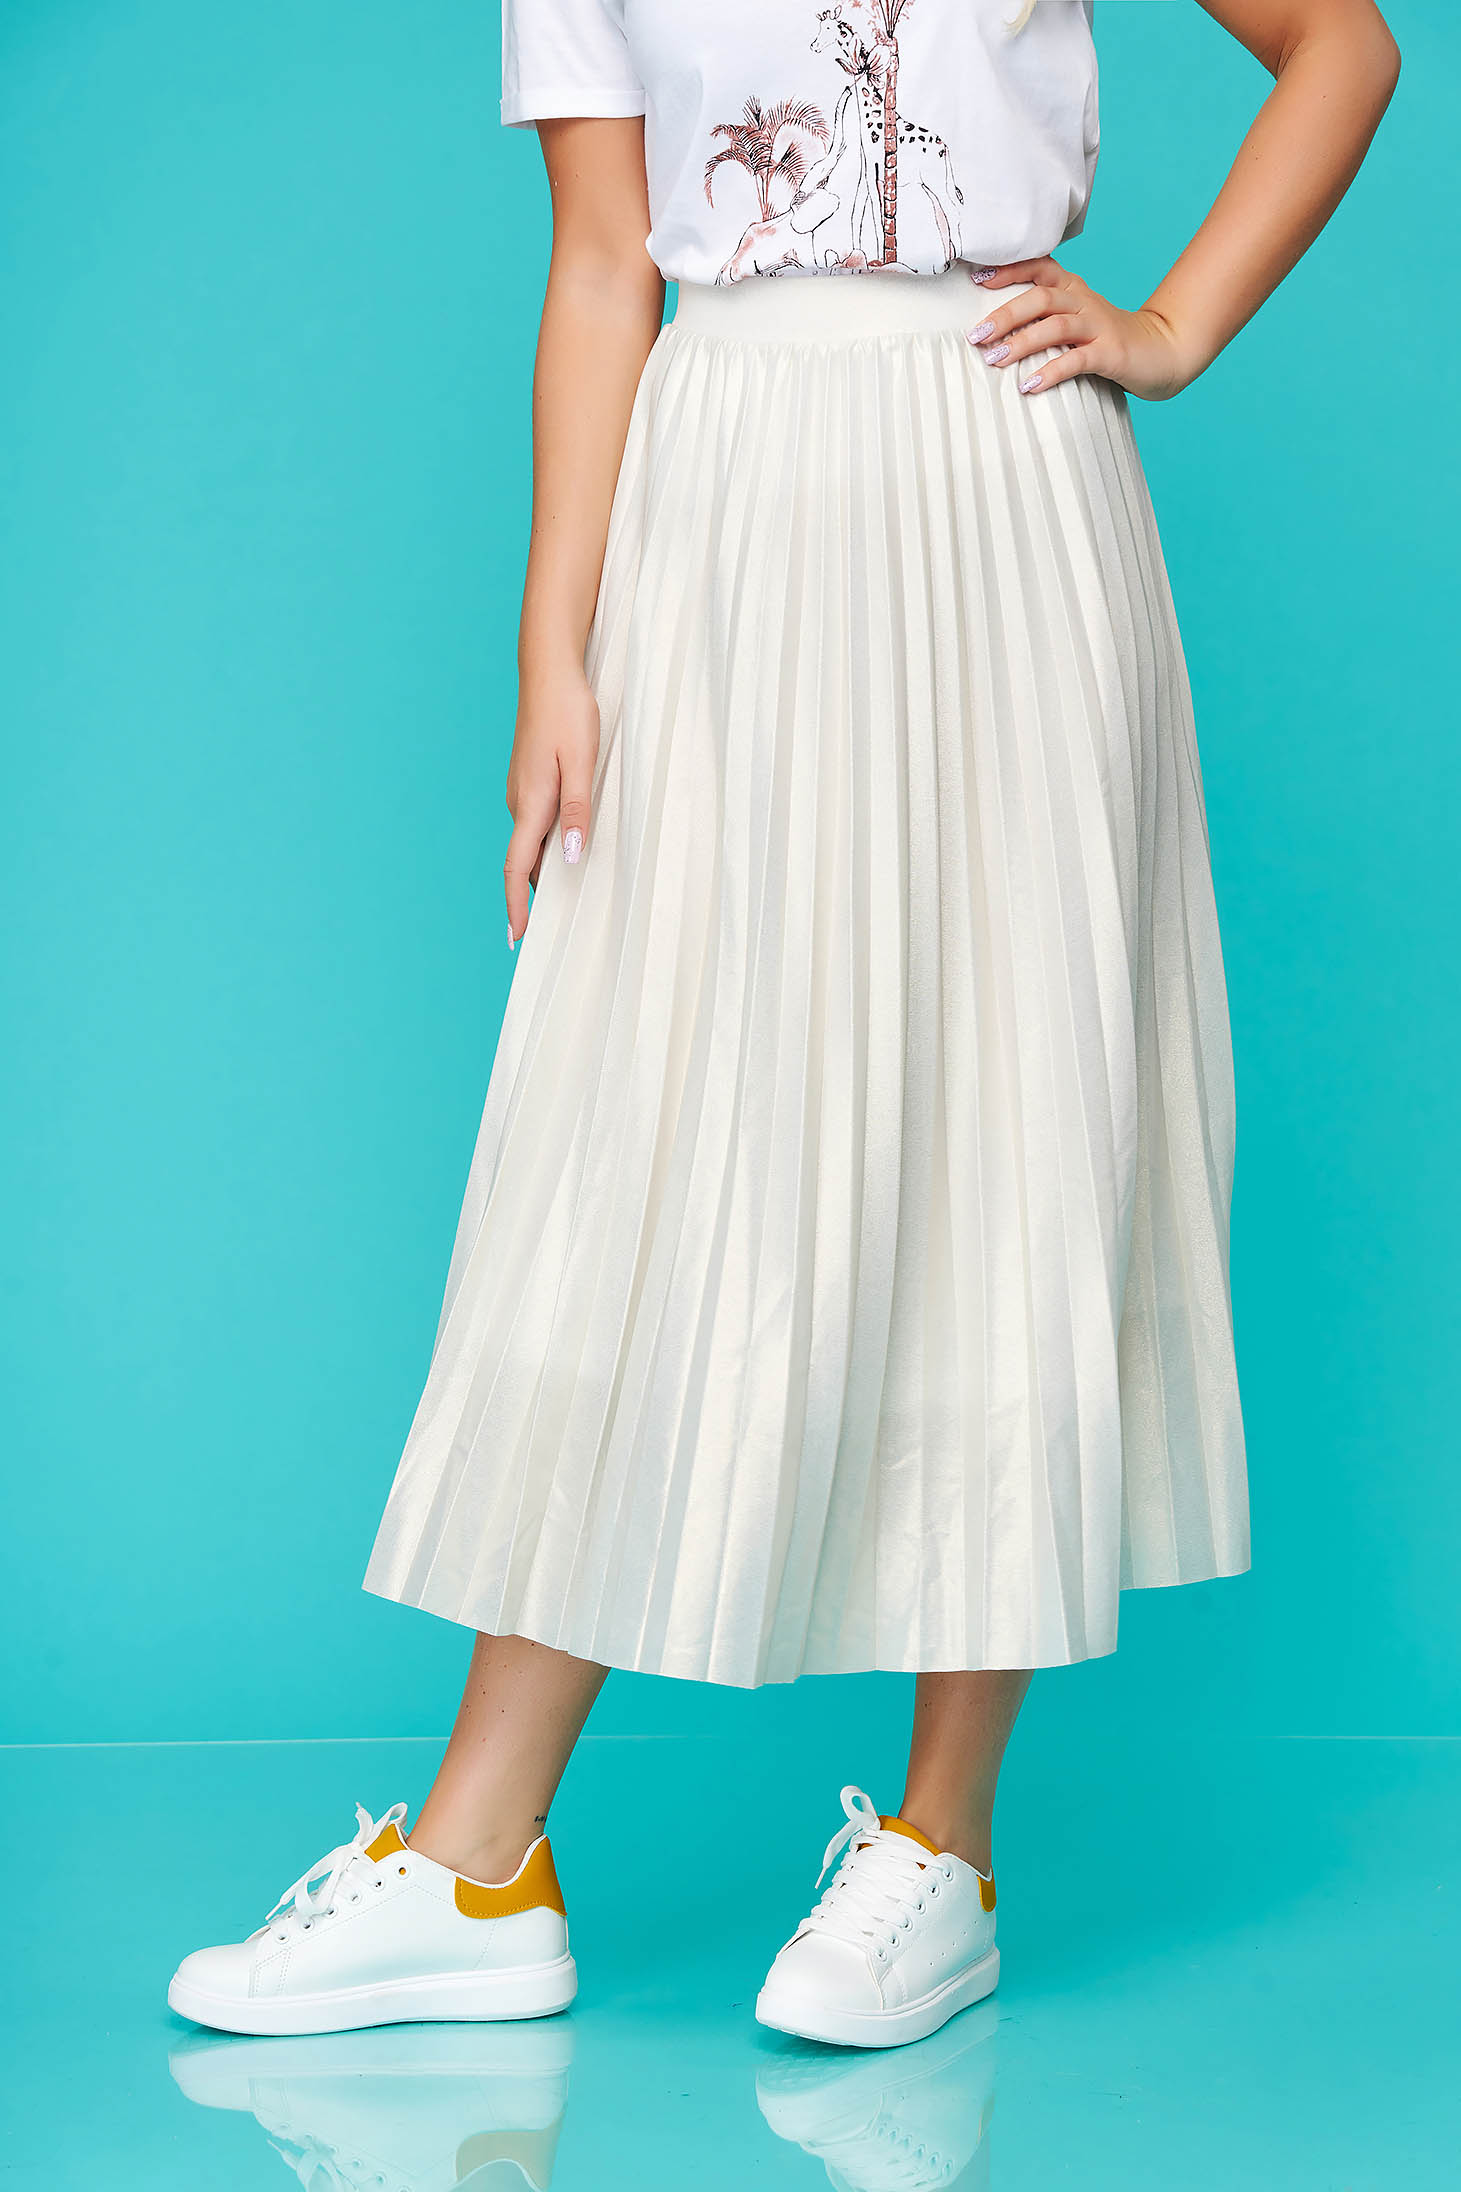 Peach skirt elegant midi folded up cloche high waisted